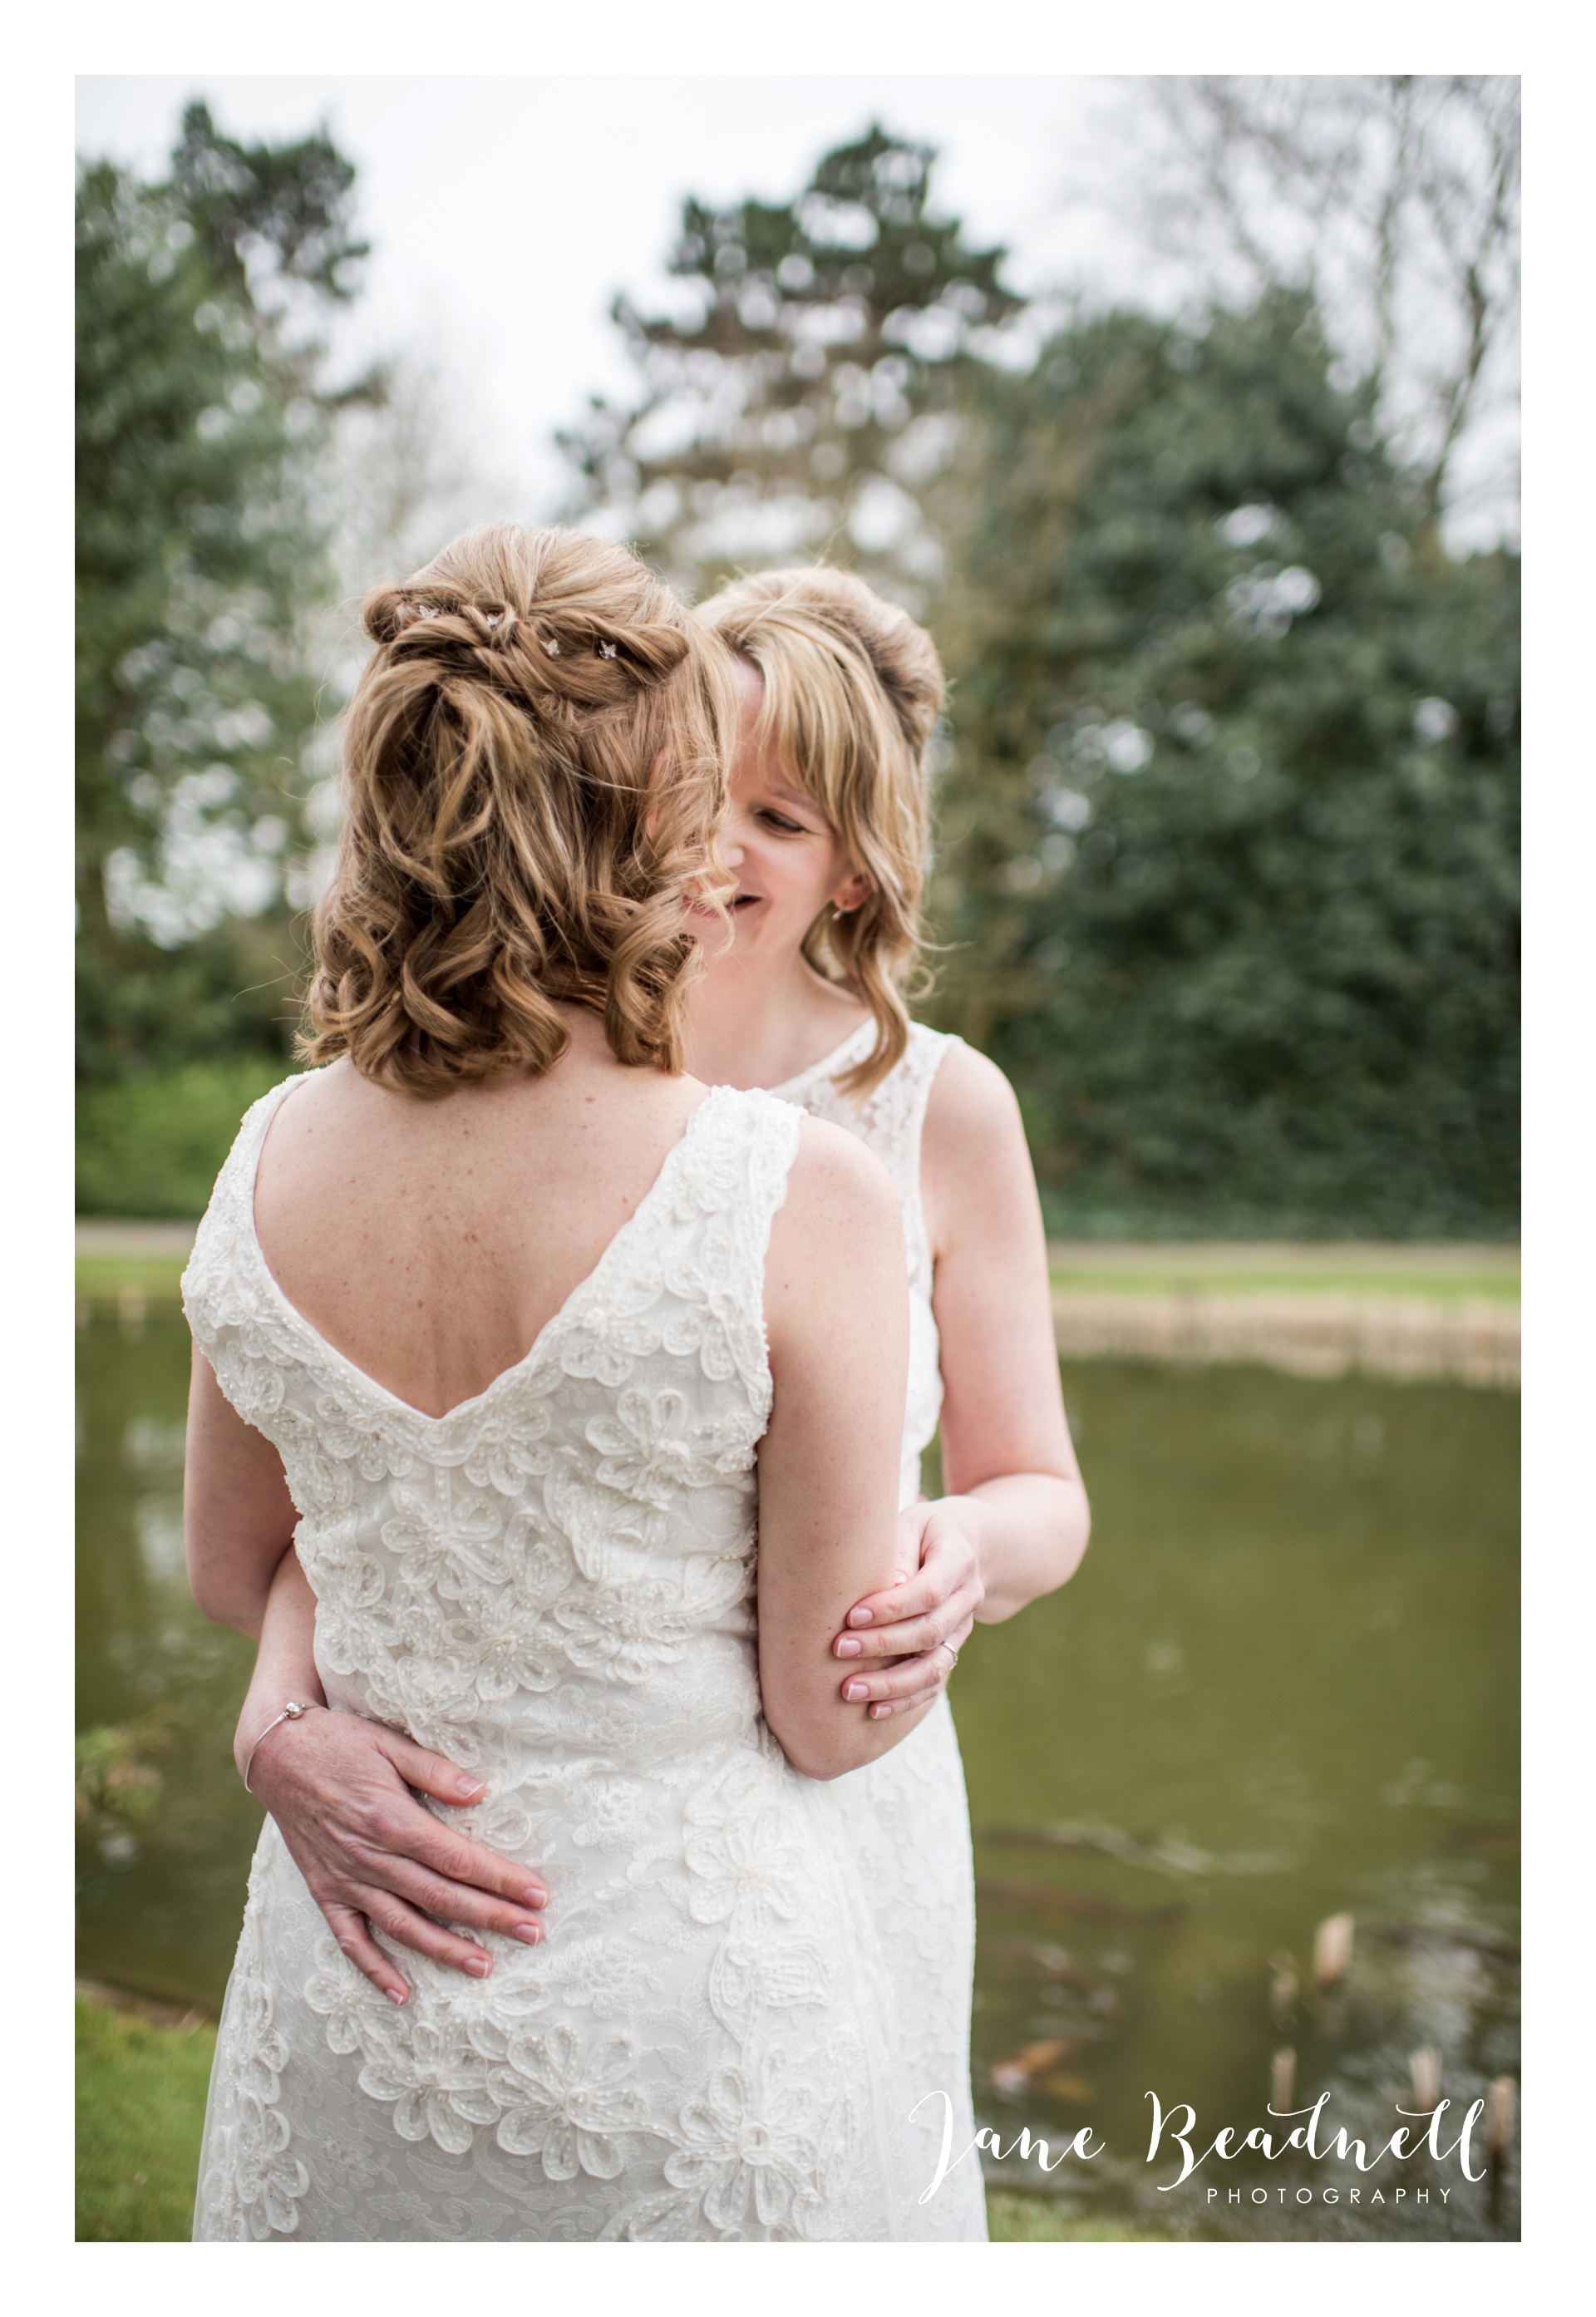 Burnby Hall Gardens wedding photography by Jane Beadnell Photography_0013